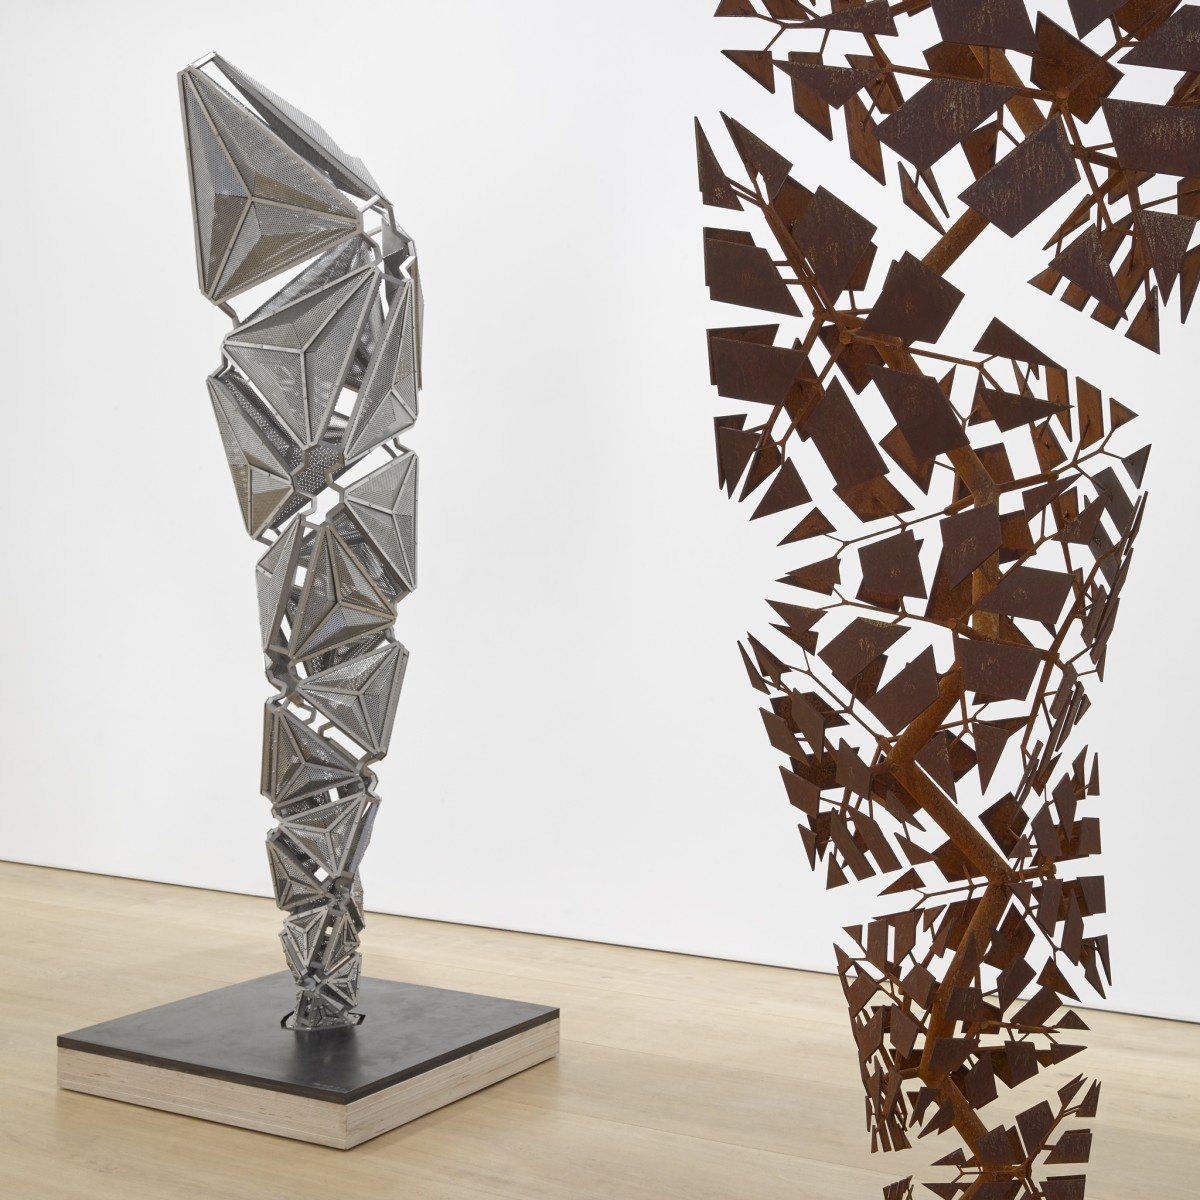 St George Auto >> Conrad Shawcross: After the Explosion, Before the Collapse | Victoria Miro